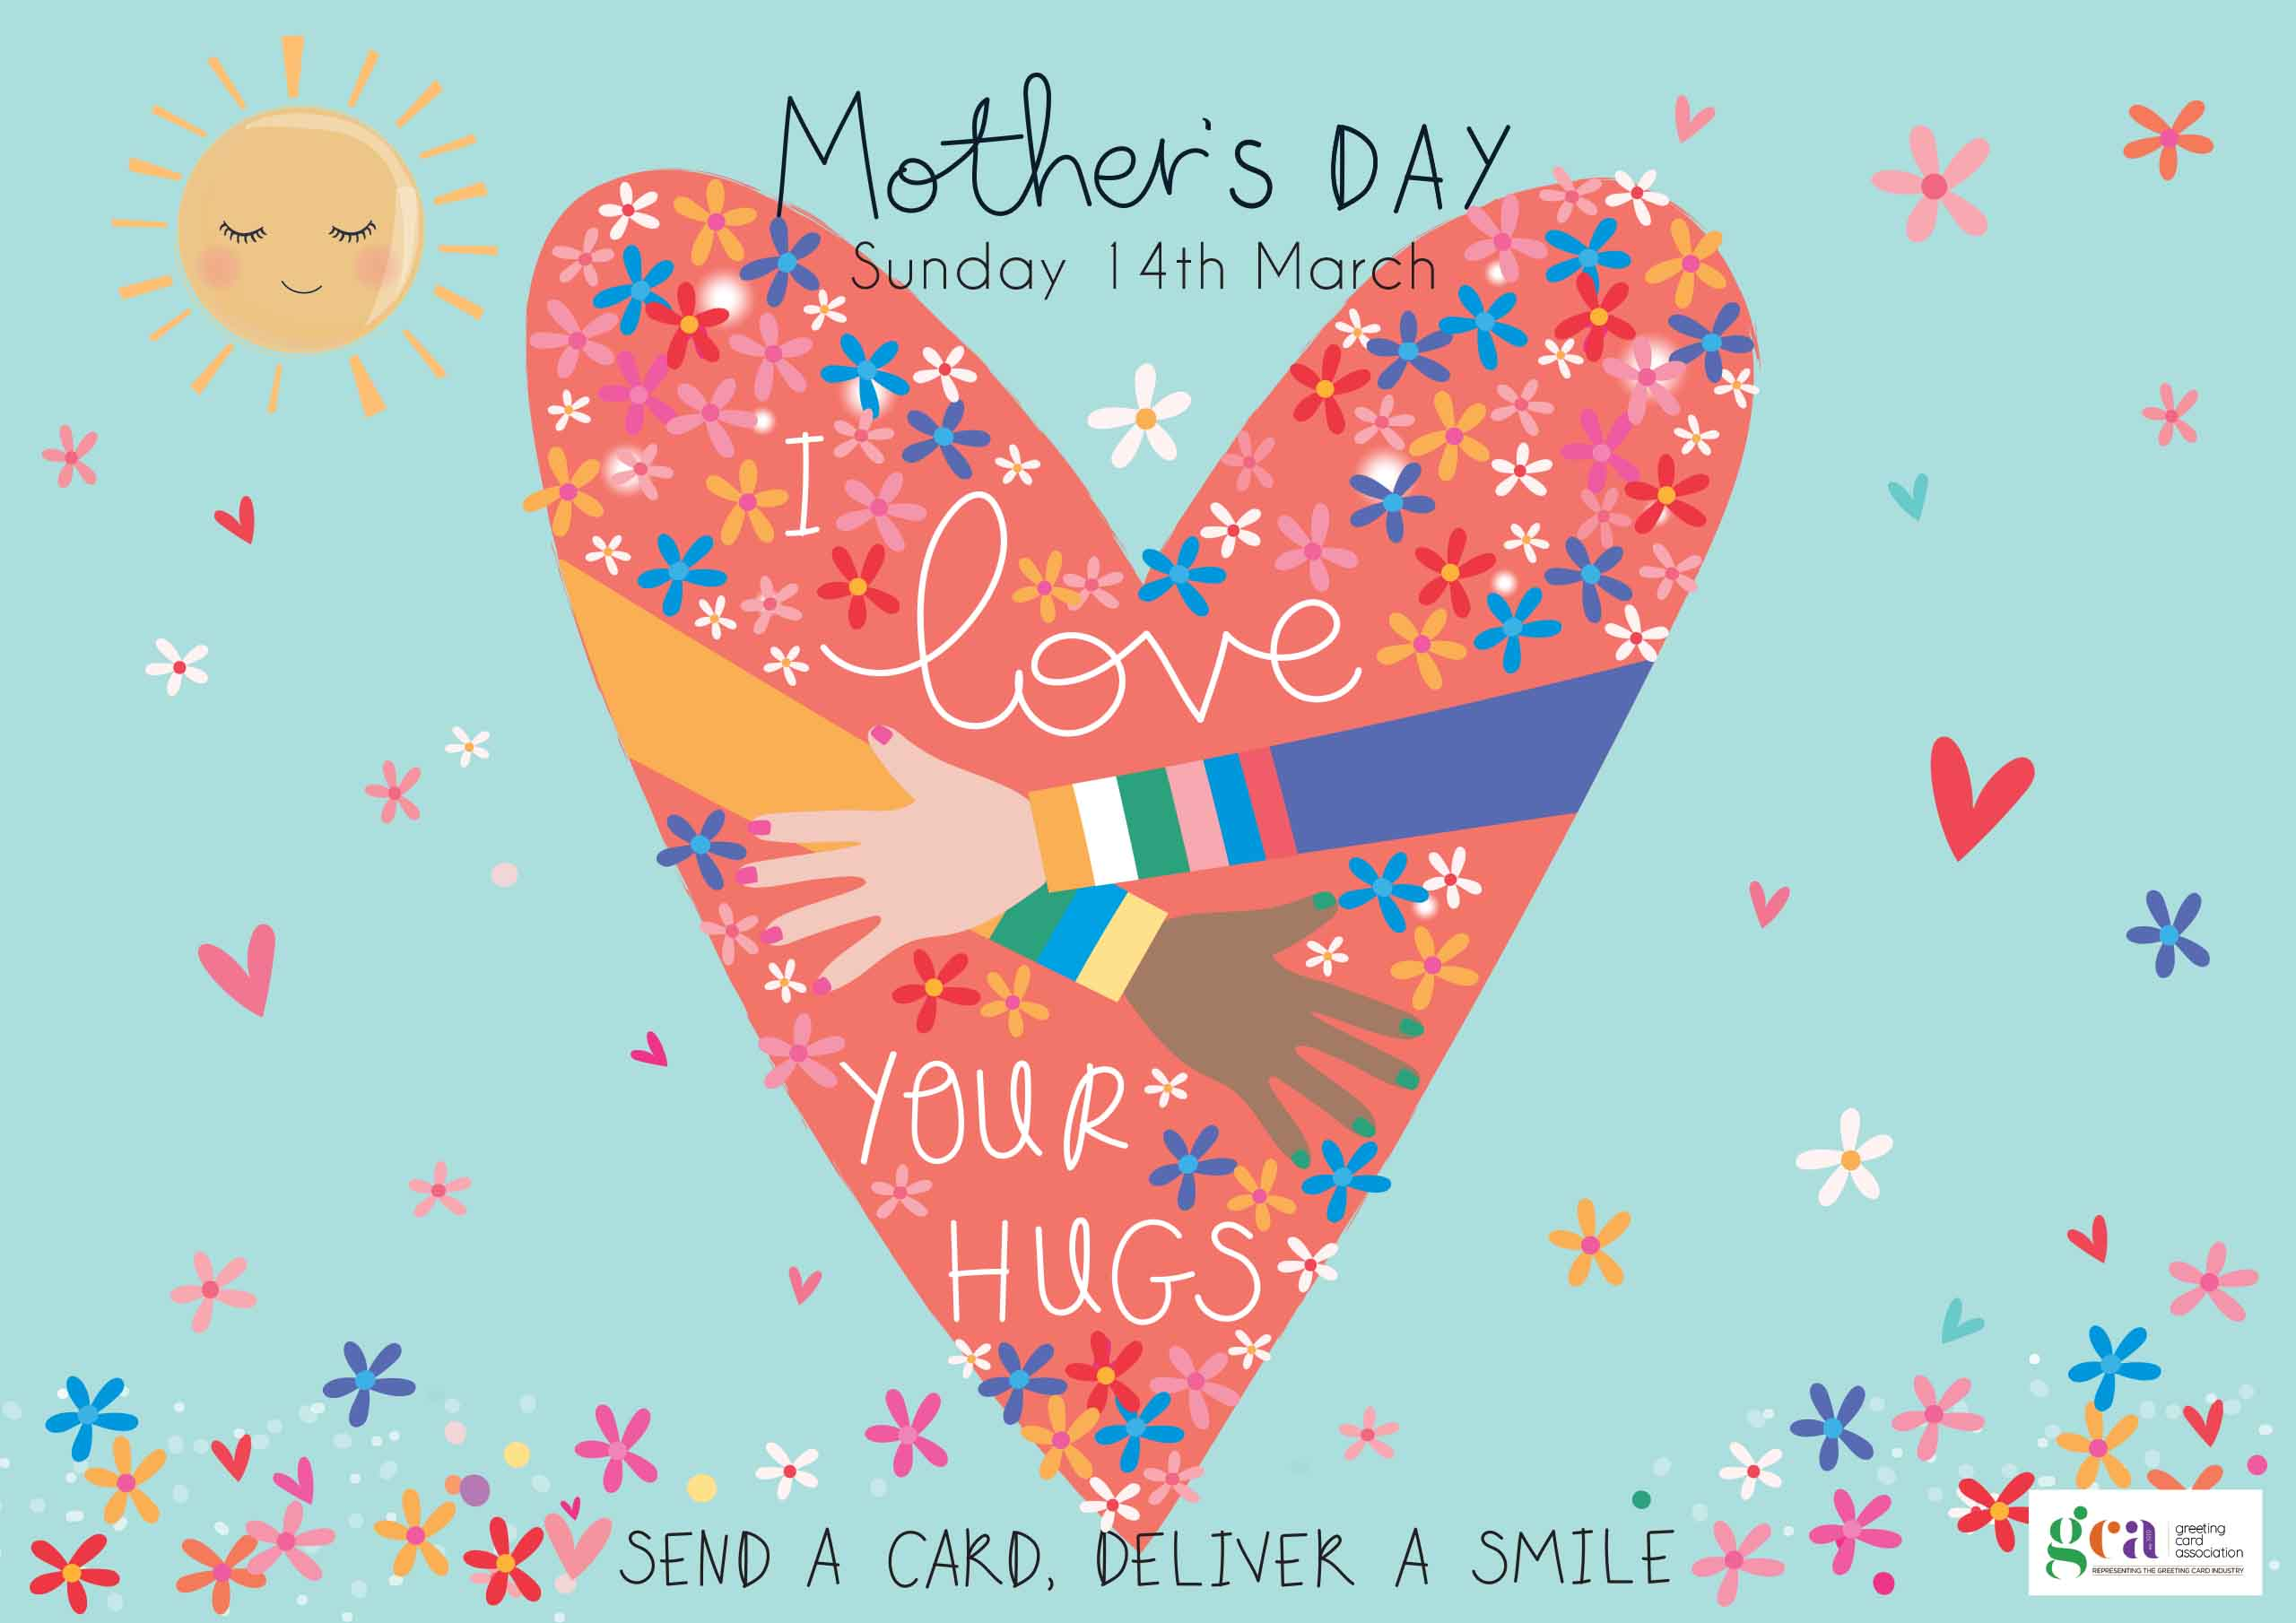 mother's day 2021 - photo #12